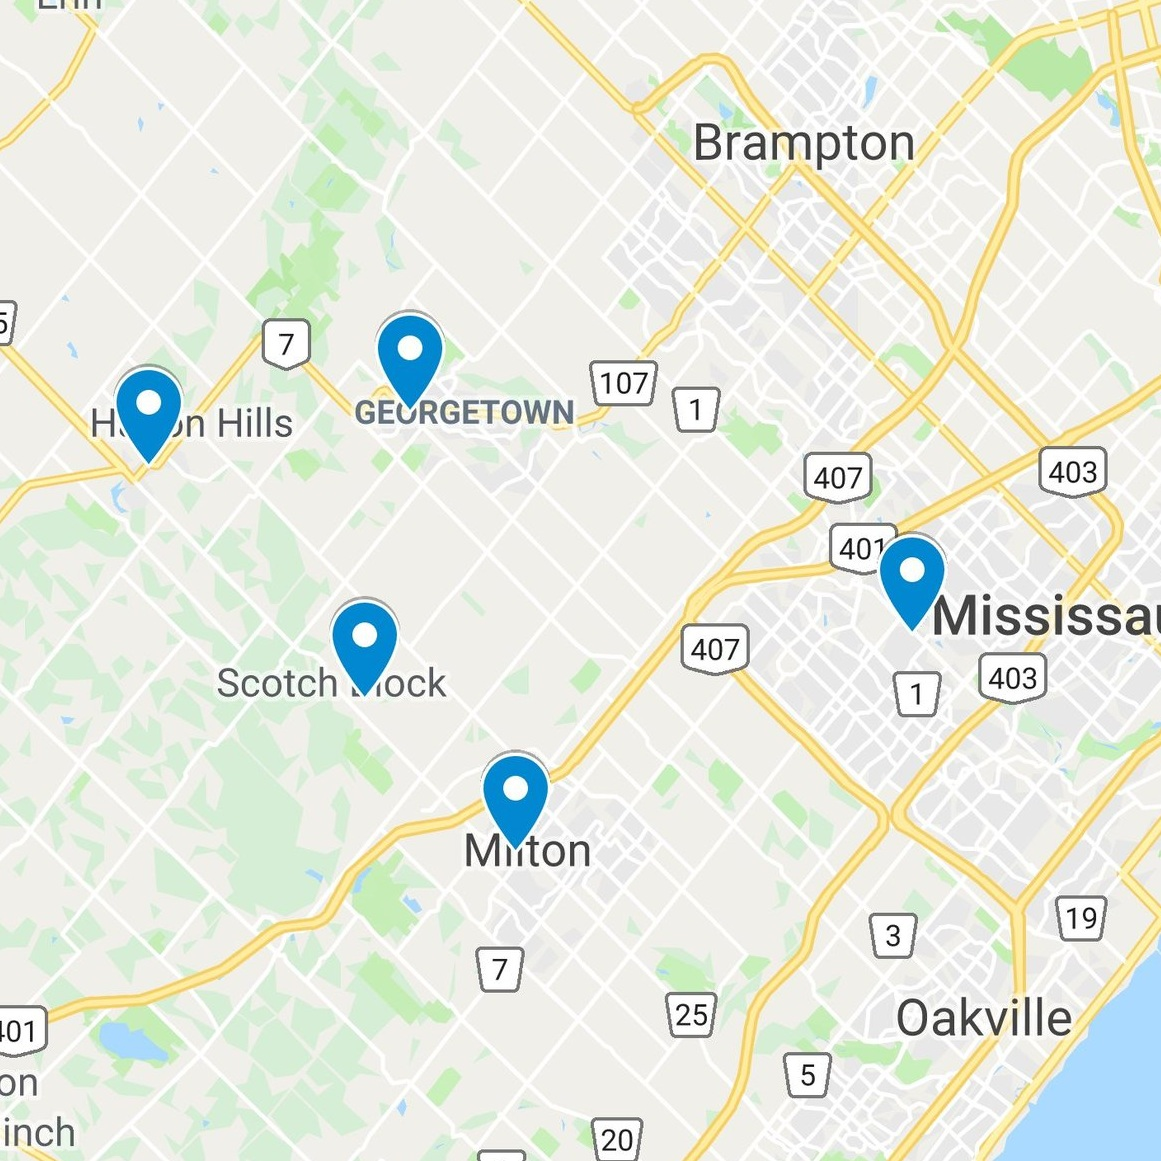 Our Licensed Partners - To find any directions to any of our licensed retailers, Google search their bar name and hit directions in their Google profile card.Acton- Tanner's Bar and ResturantMilton- Ned Devine's, Milton Curling ClubGeorgetown- Uncorked on MainStreetsville- Streetsville Bowling alley